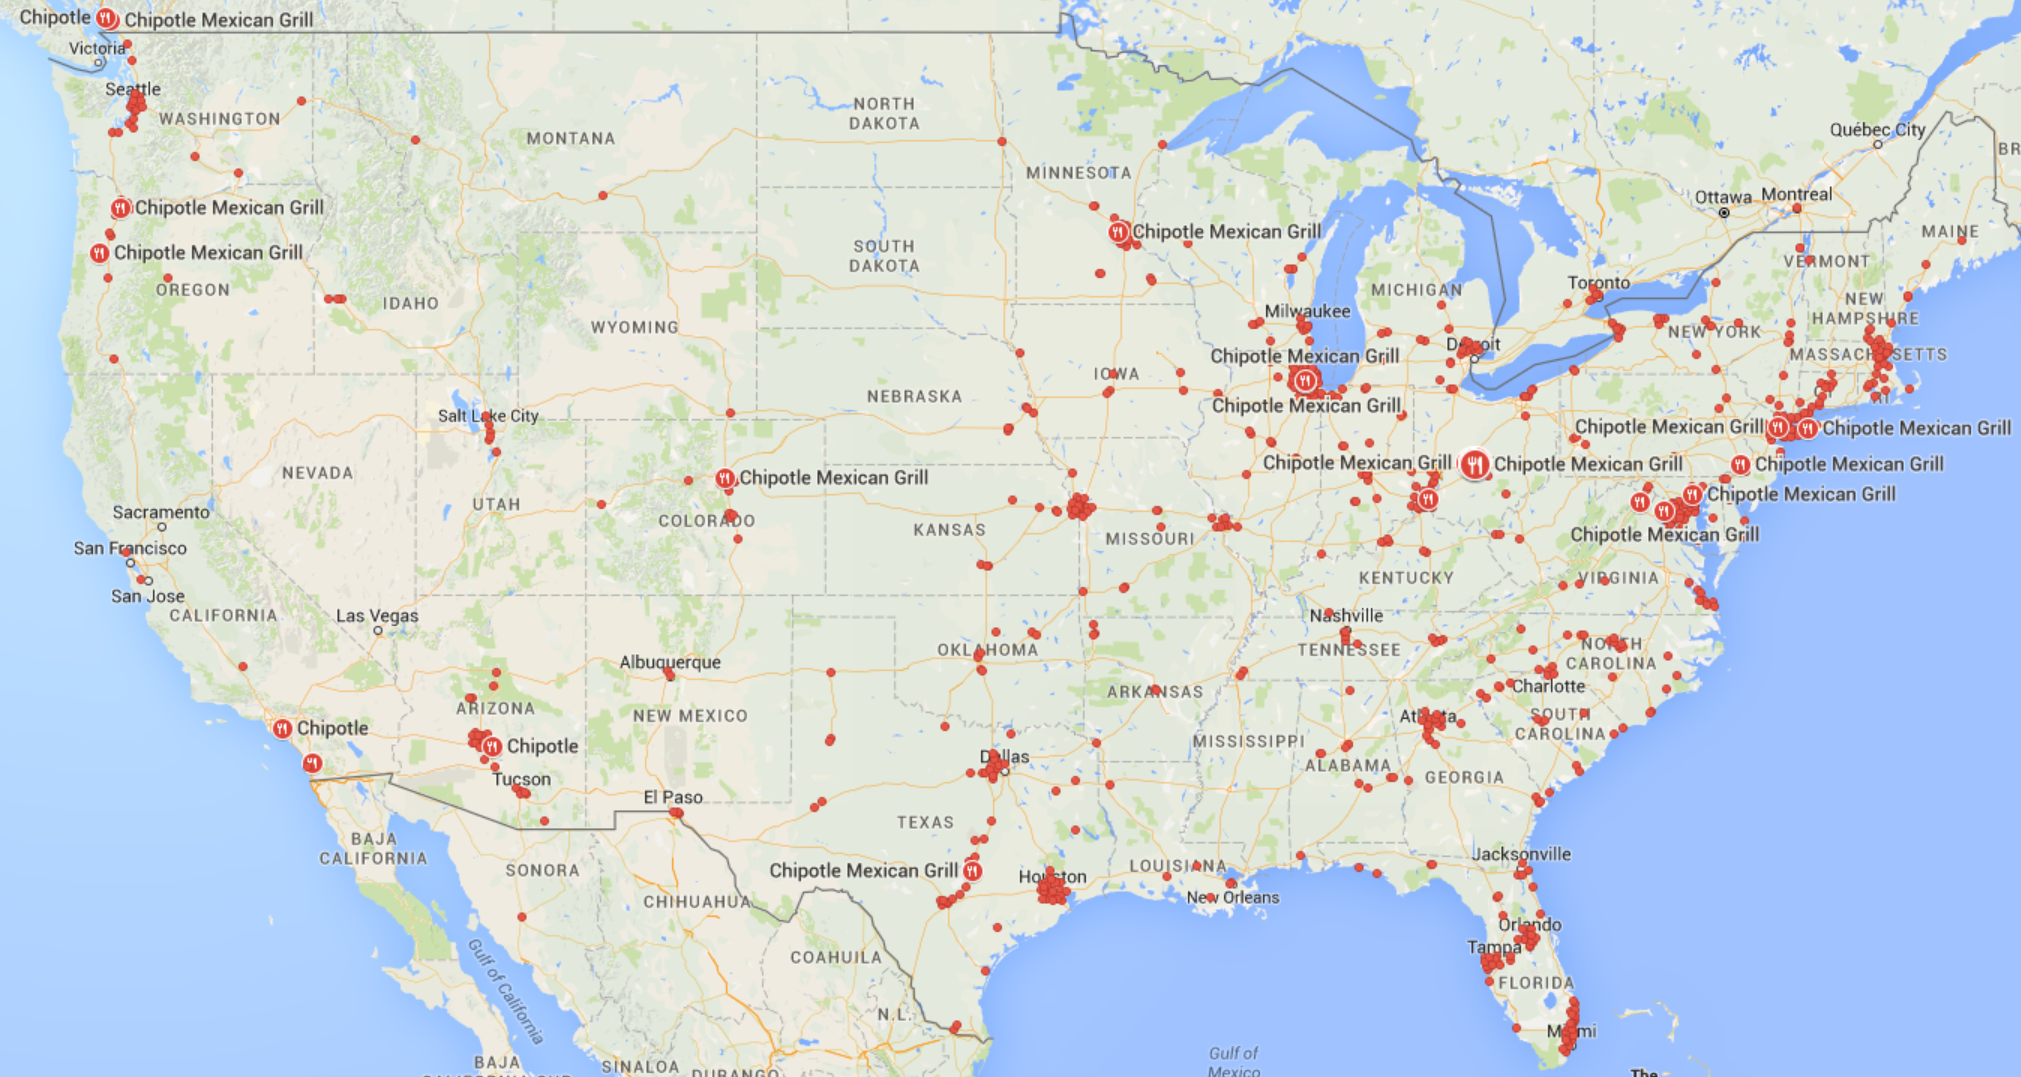 Chipotle as a National nd | Chipotle Commodity Chain on tj maxx map, taco map, lululemon map, arby's map, petland map, friendly's map, graeter's map, cumberland farms map, dutch bros map, cold stone creamery map, macaroni grill map, dunkin donuts map, burgerville map, supercuts map, zaxbys map, el pollo loco map, dave & buster's map, fazoli's map, chic fil a map, old navy map,